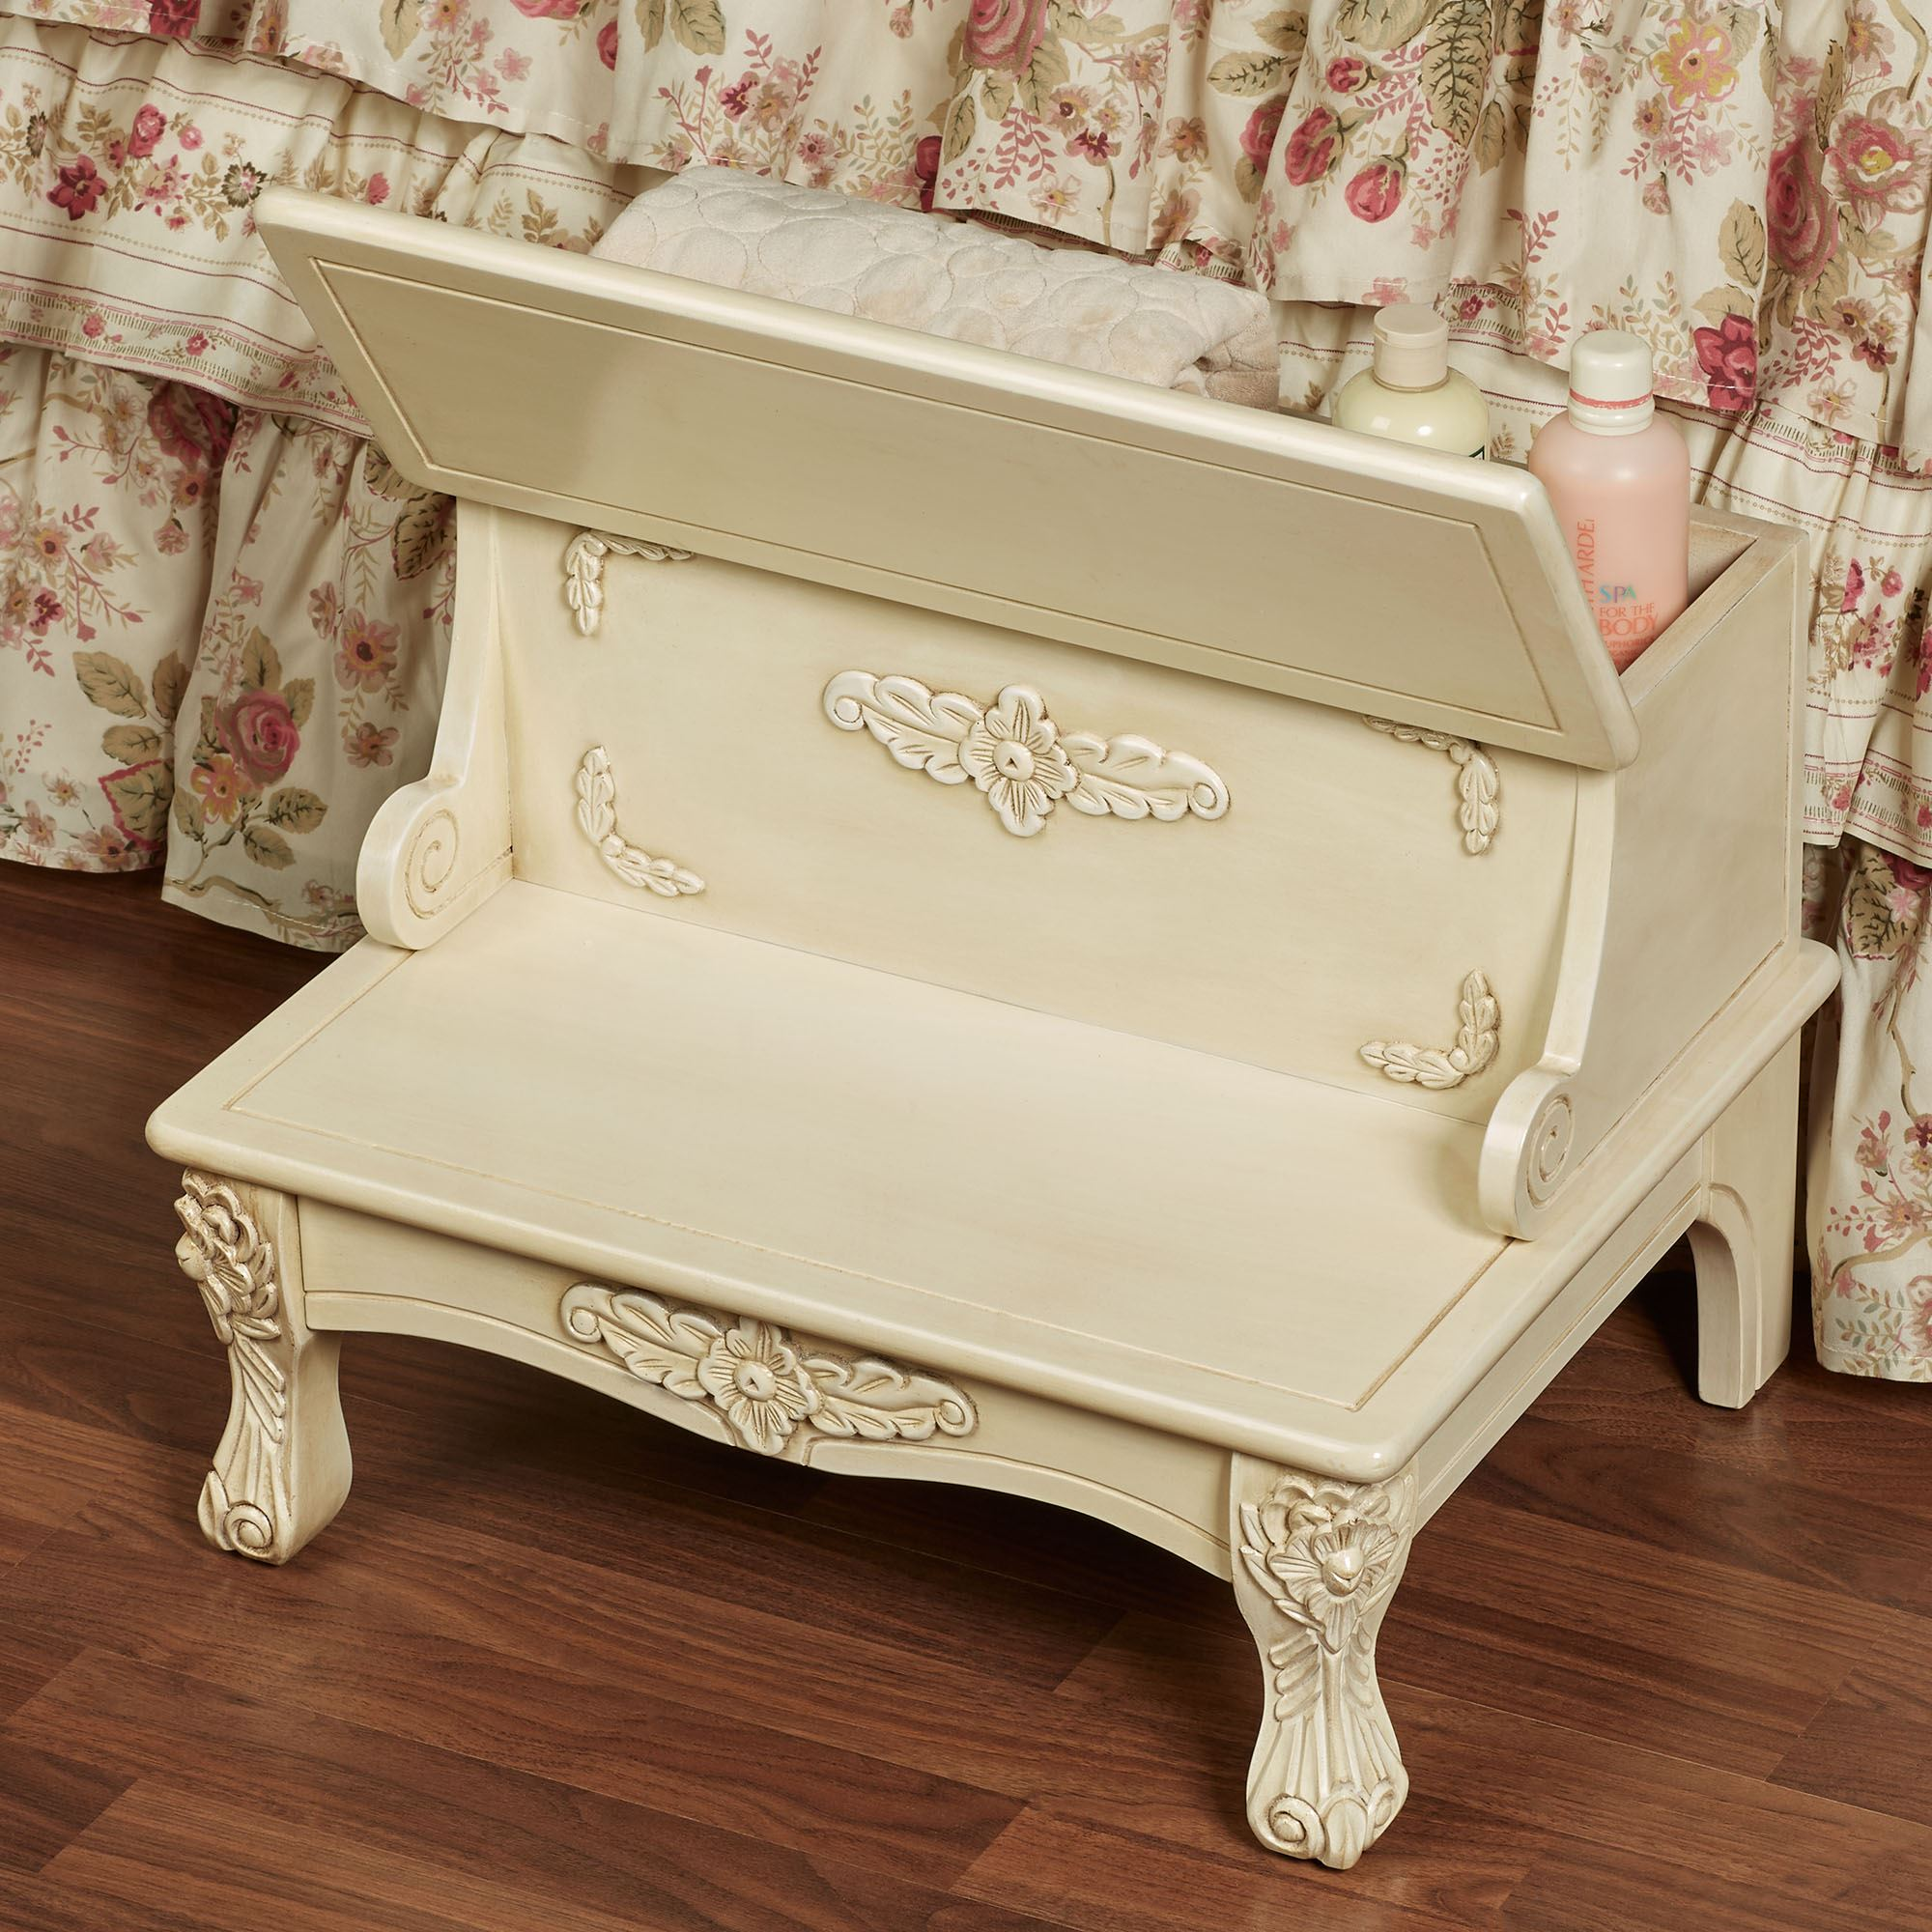 Fabulous Viviana Wooden Bed Steps With Storage Ibusinesslaw Wood Chair Design Ideas Ibusinesslaworg